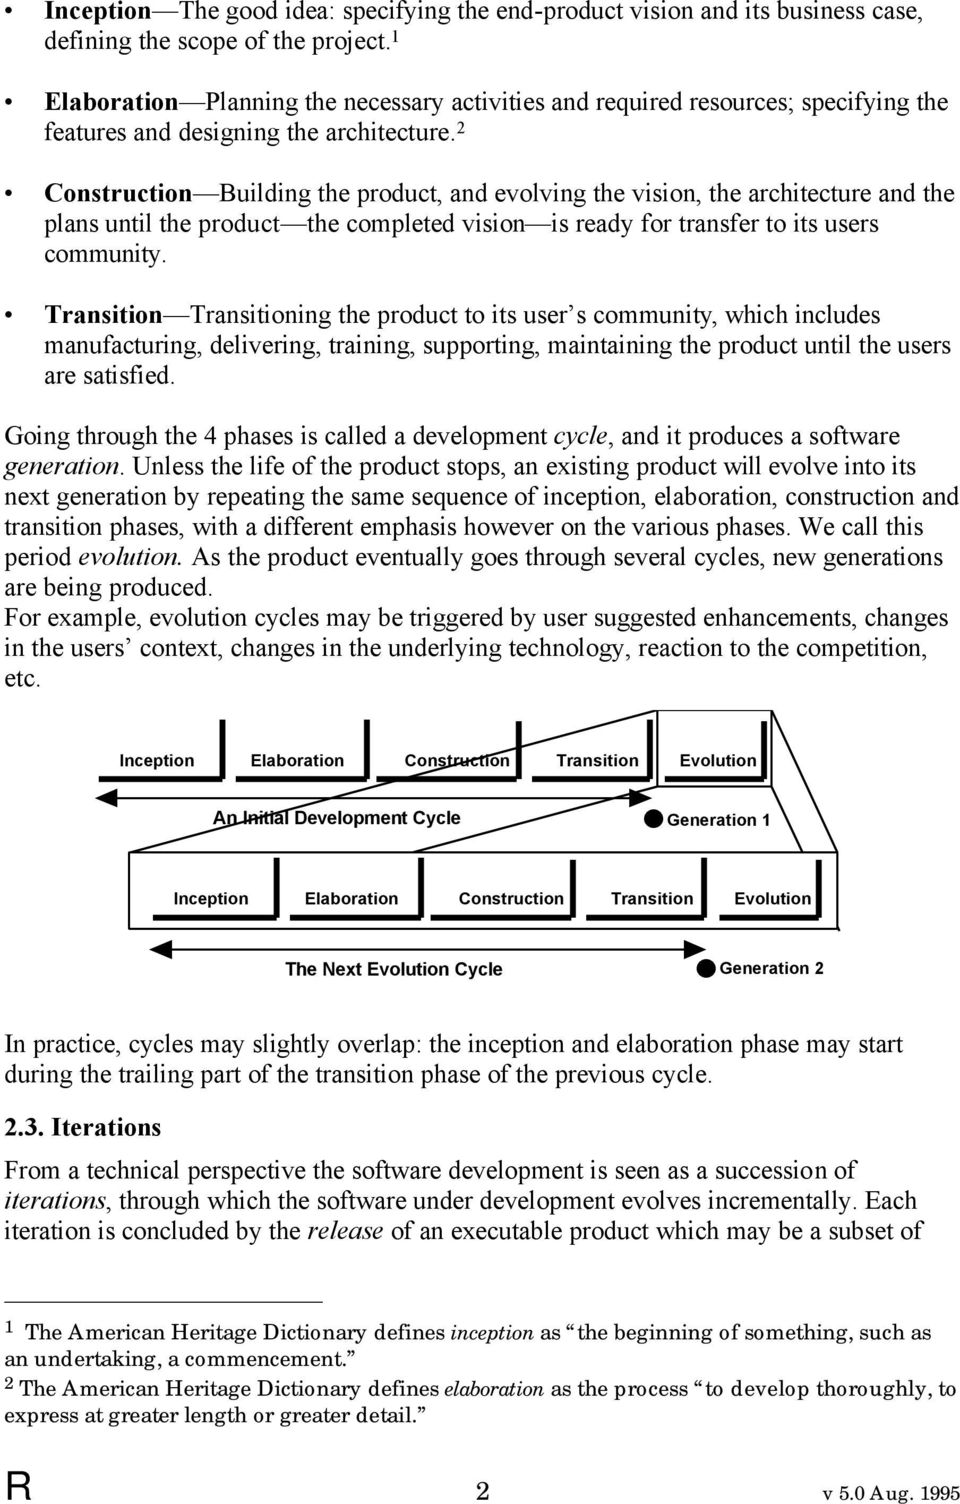 2 Construction Building the product, and evolving the vision, the architecture and the plans until the product the completed vision is ready for transfer to its users community.